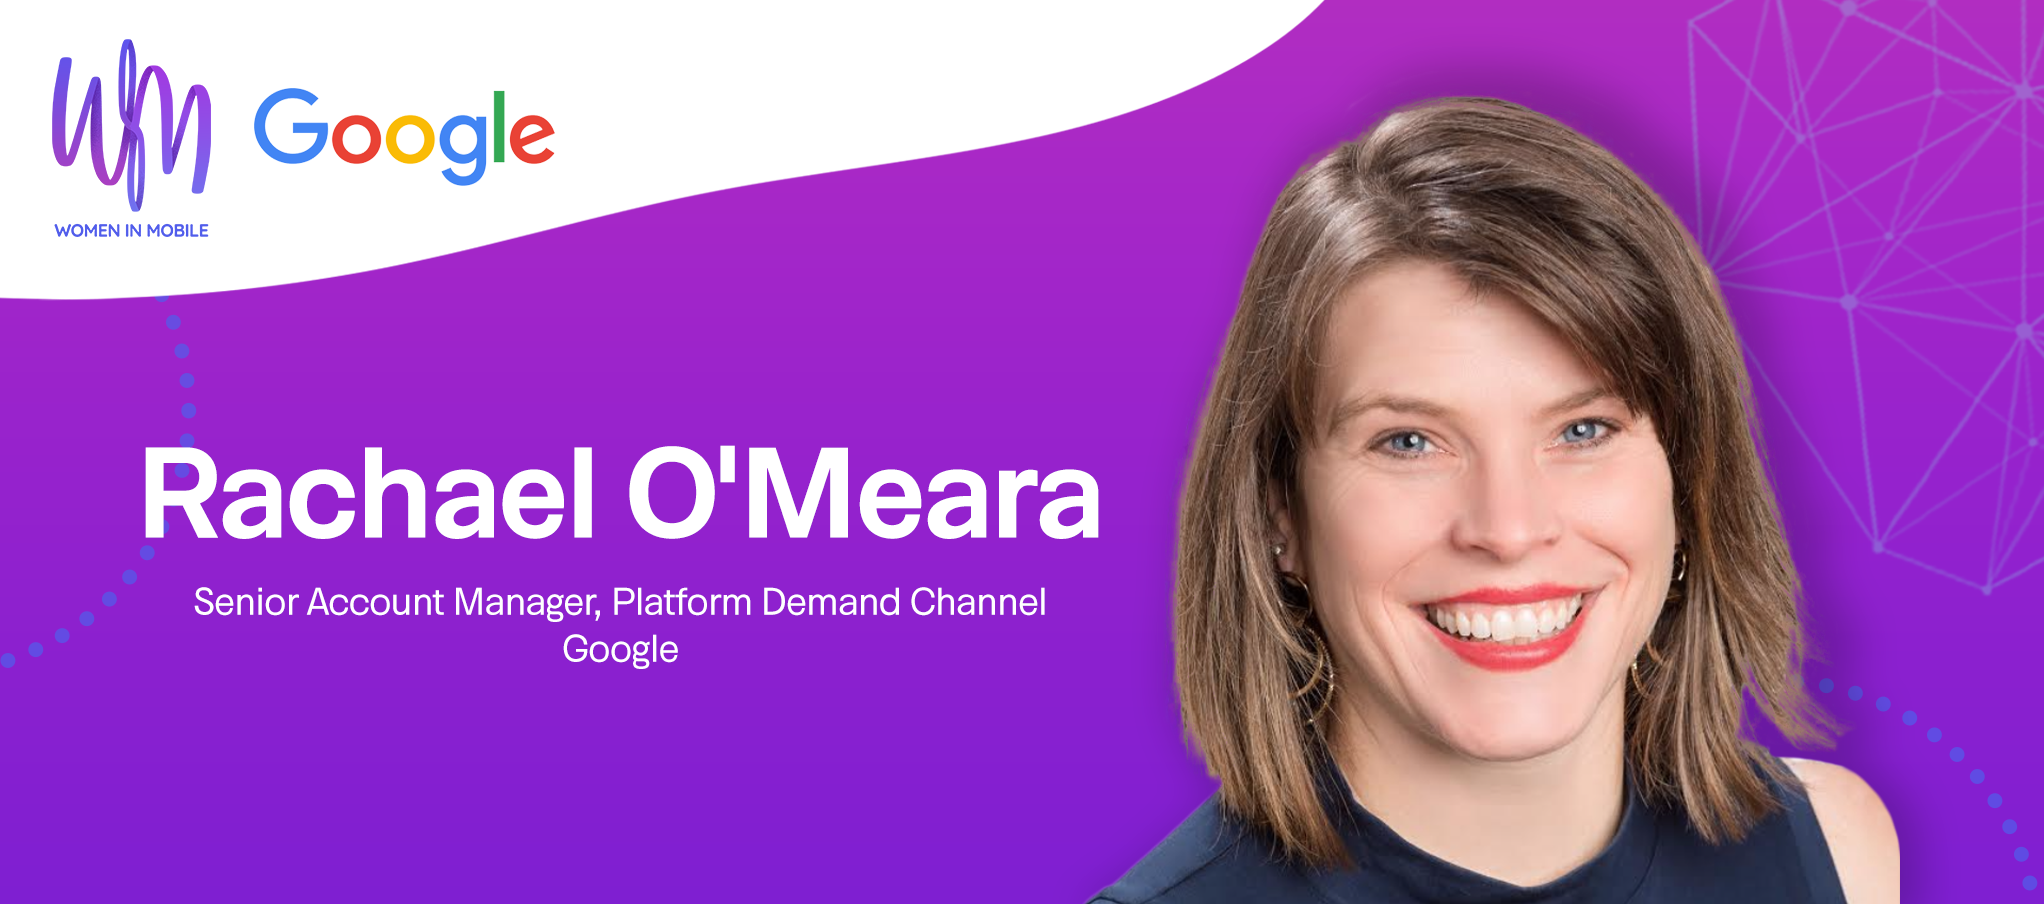 Rachael O'Meara, Senior Account Manager, Platform Demand Channel at Google at Aarki's Women in Mobile series